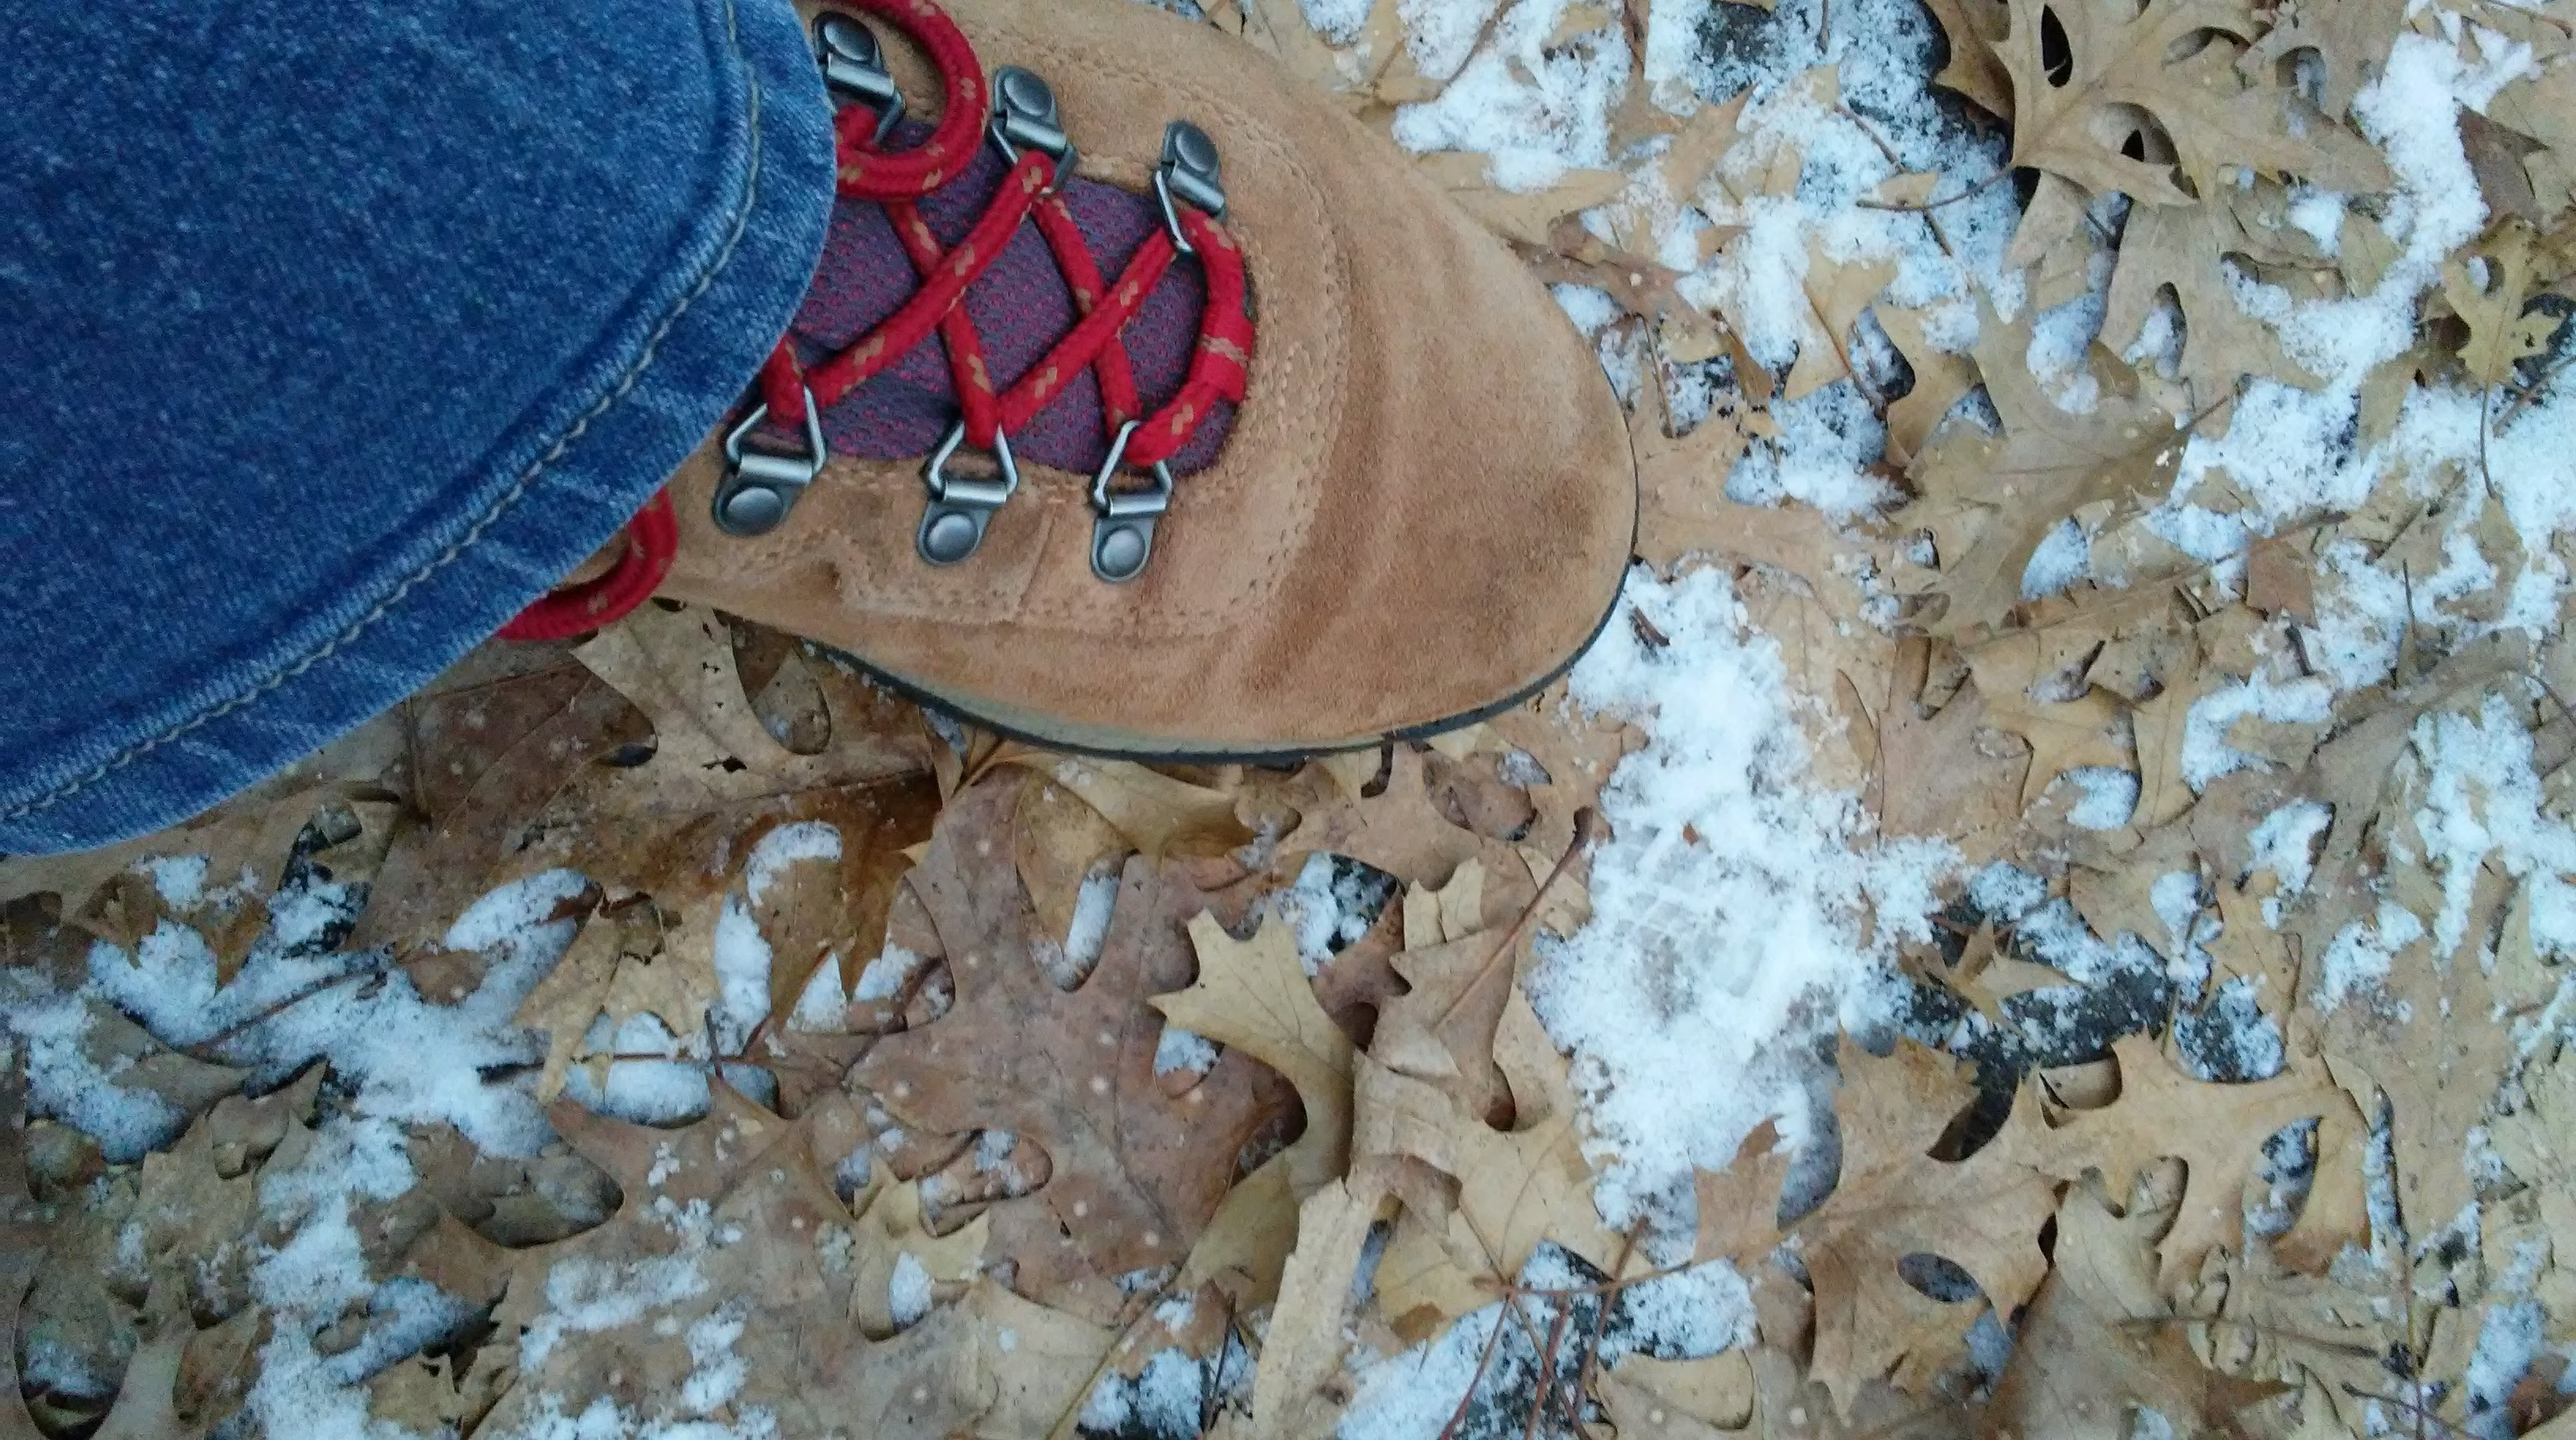 hiking boot, blue jean hem, leaves, snow